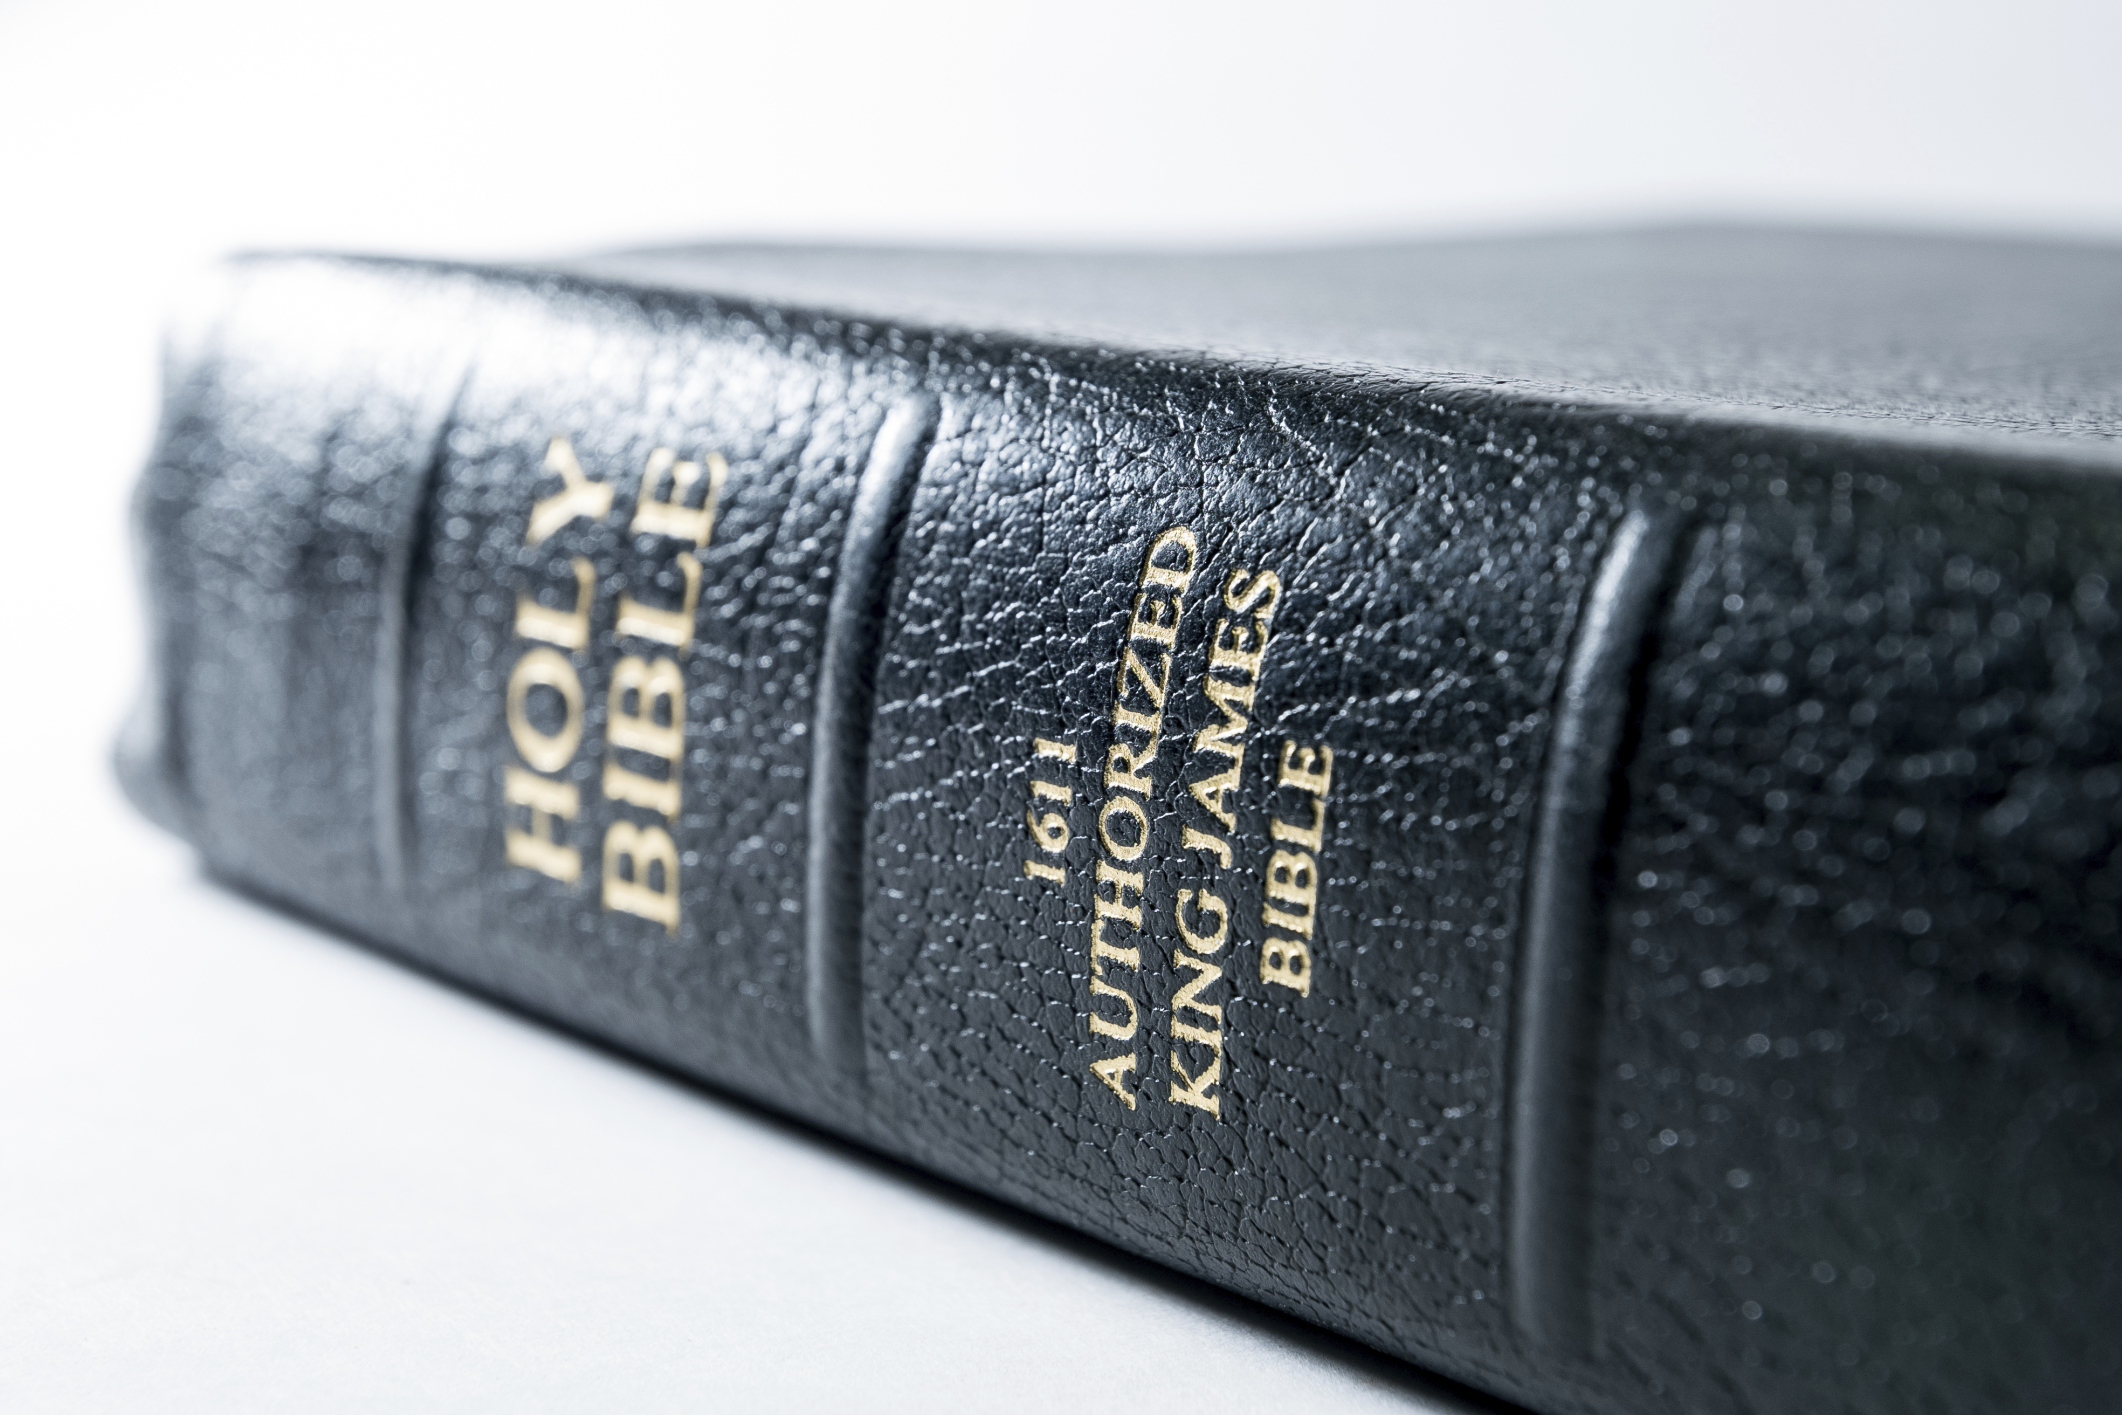 7 Things All Mormons Should Know About the King James Bible